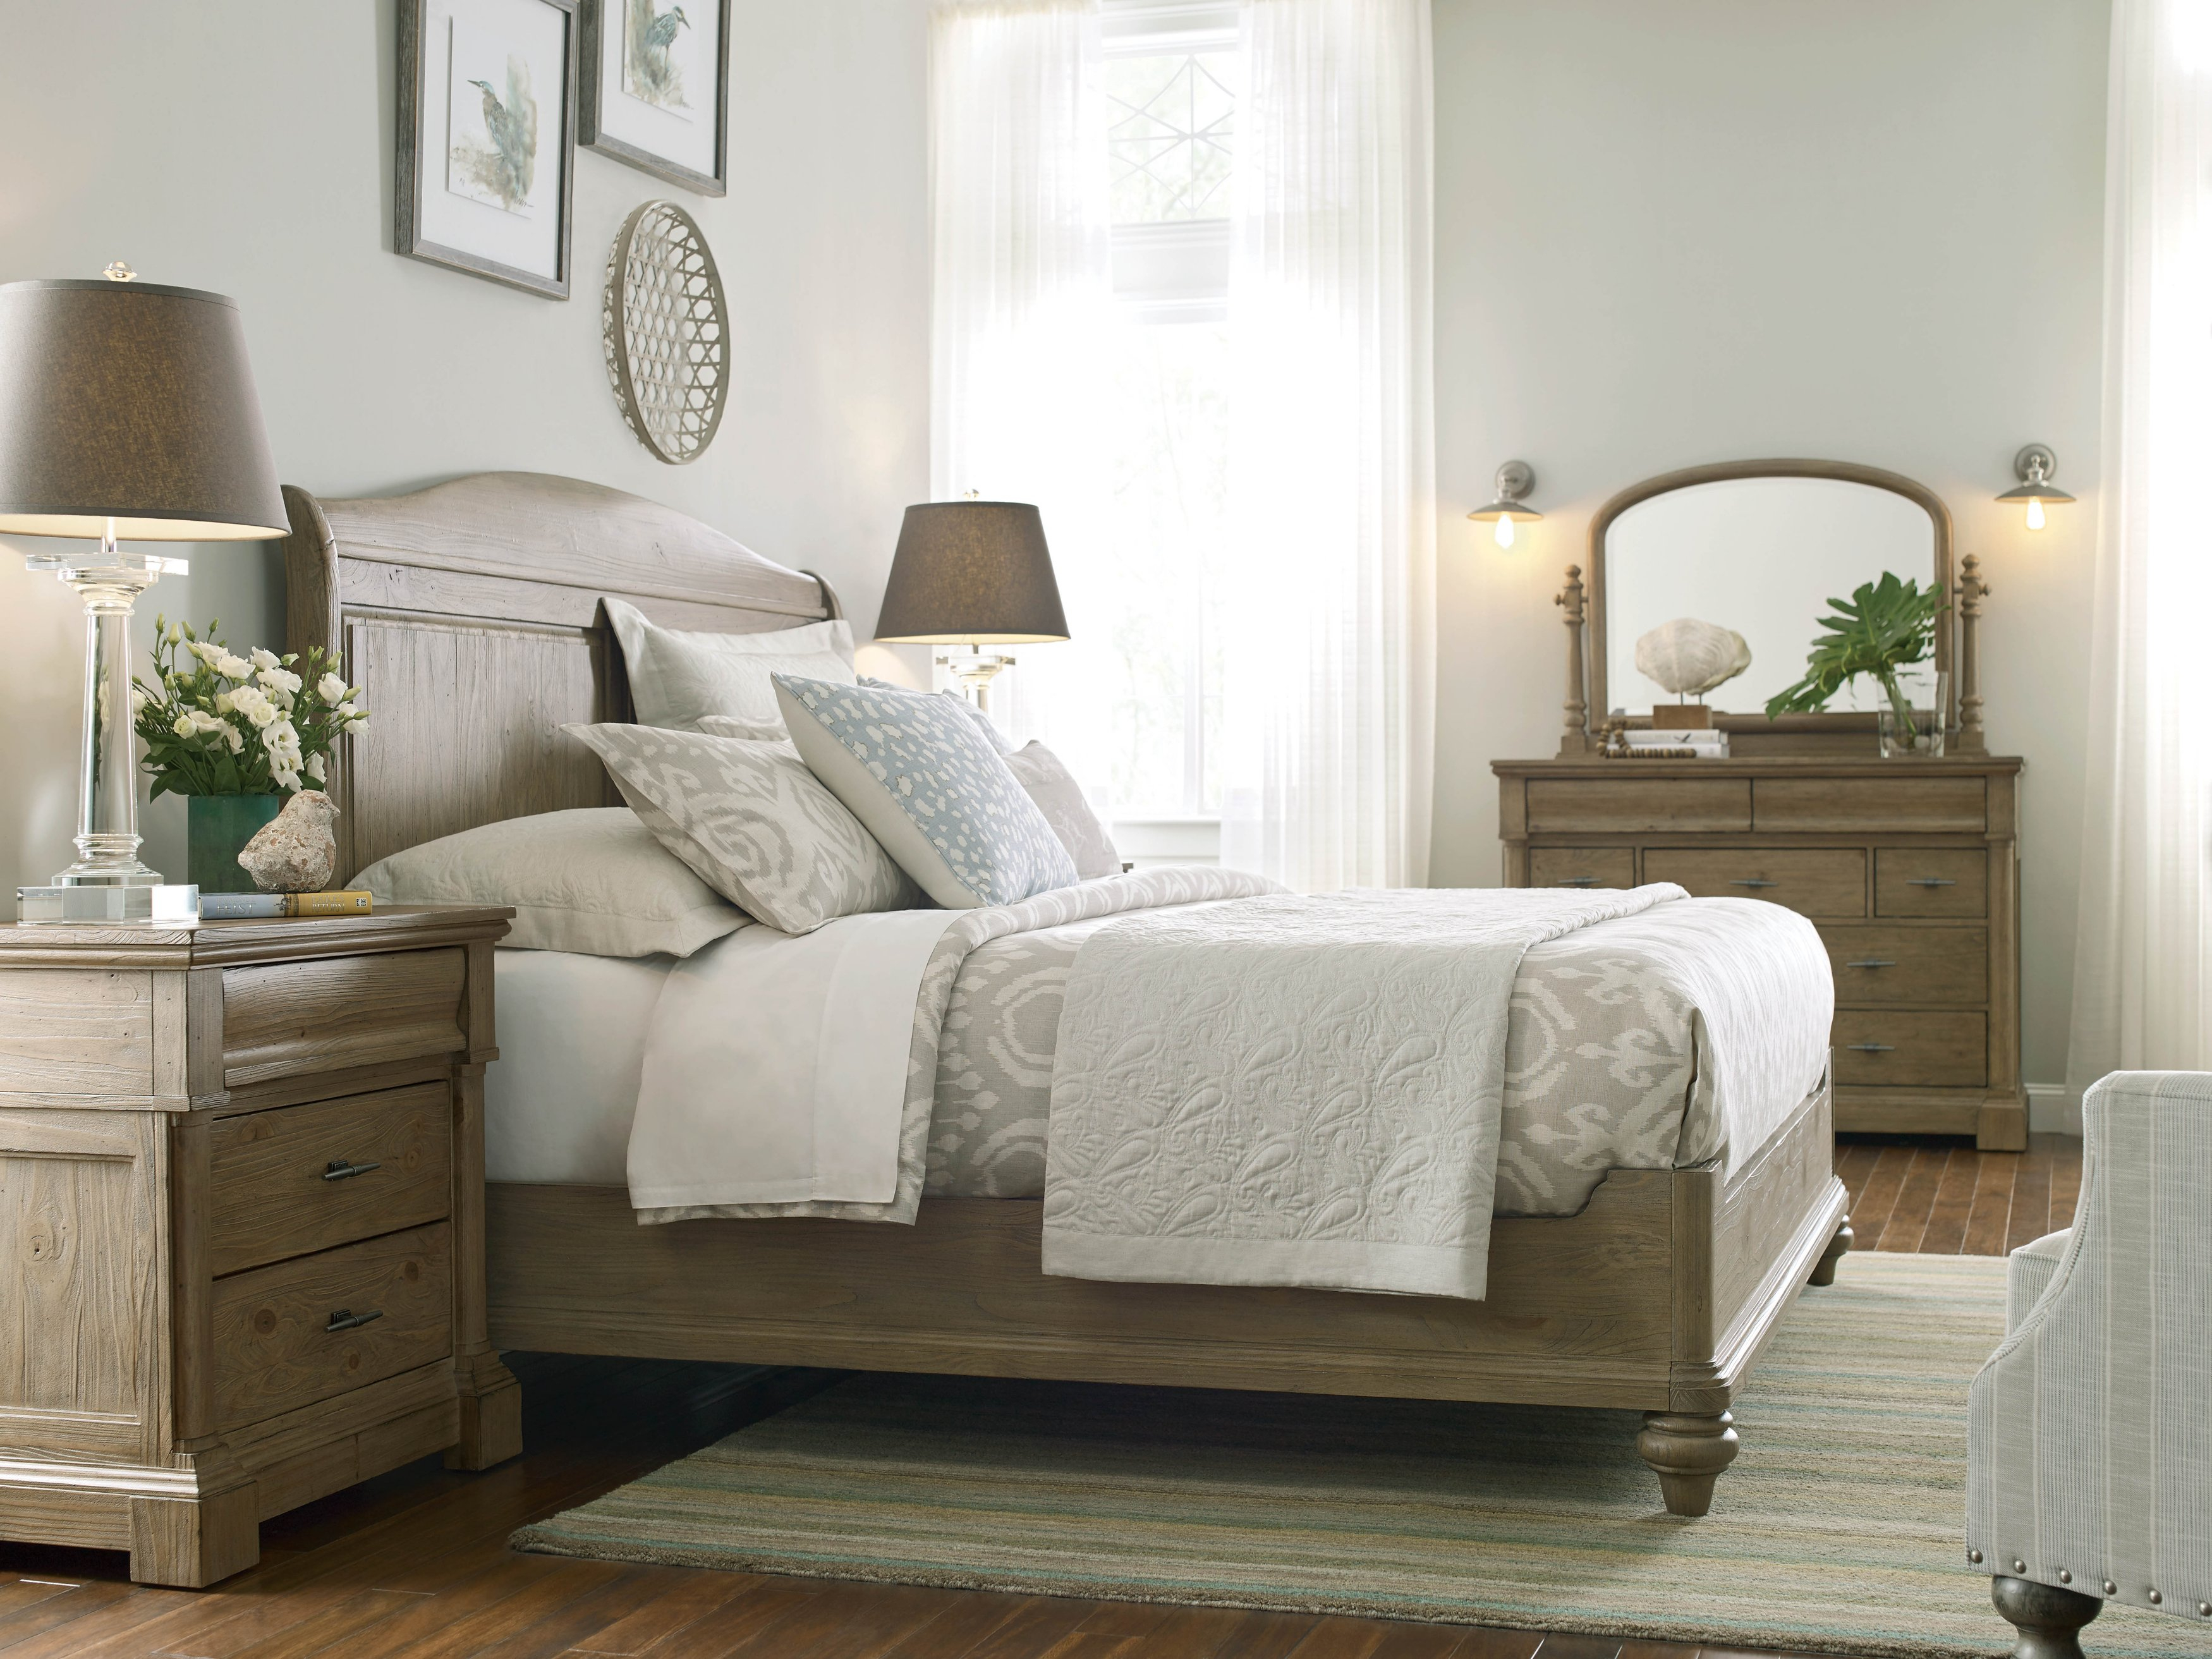 Kincaid Stone Street Bedroom Collection